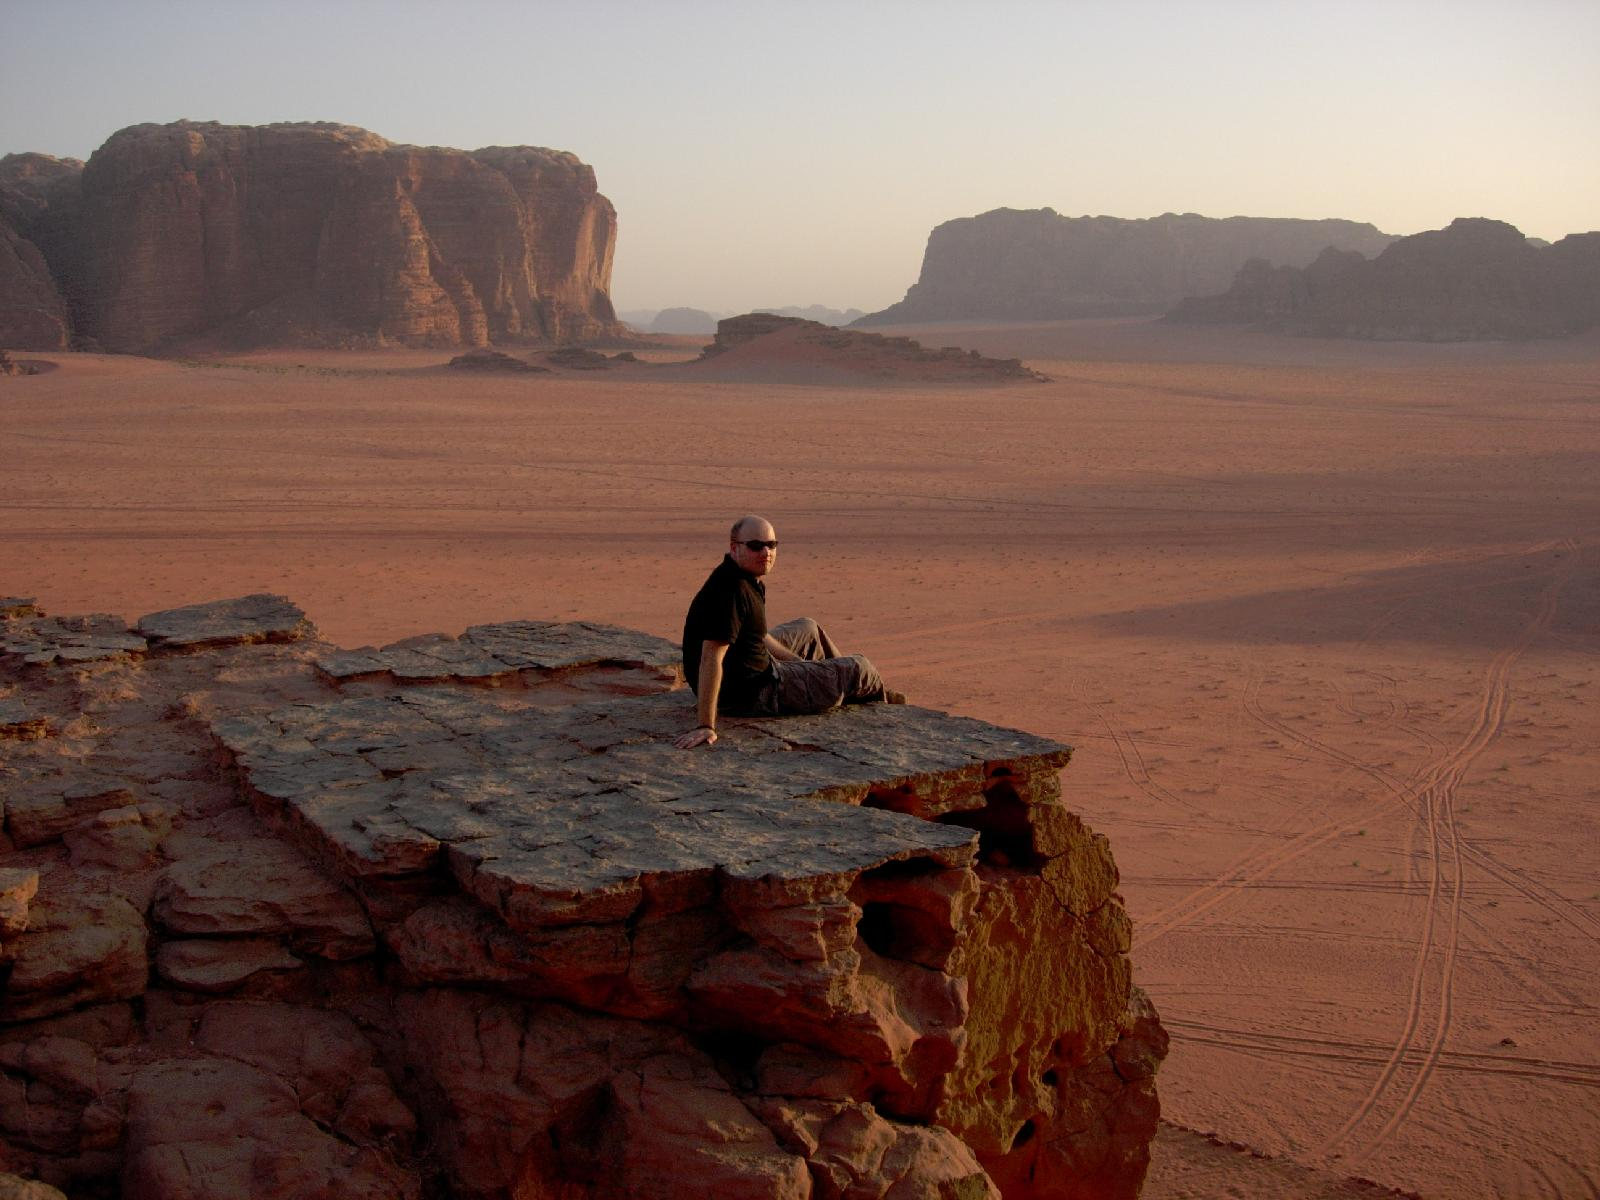 Wadi Rum Had We But World Enough And Time